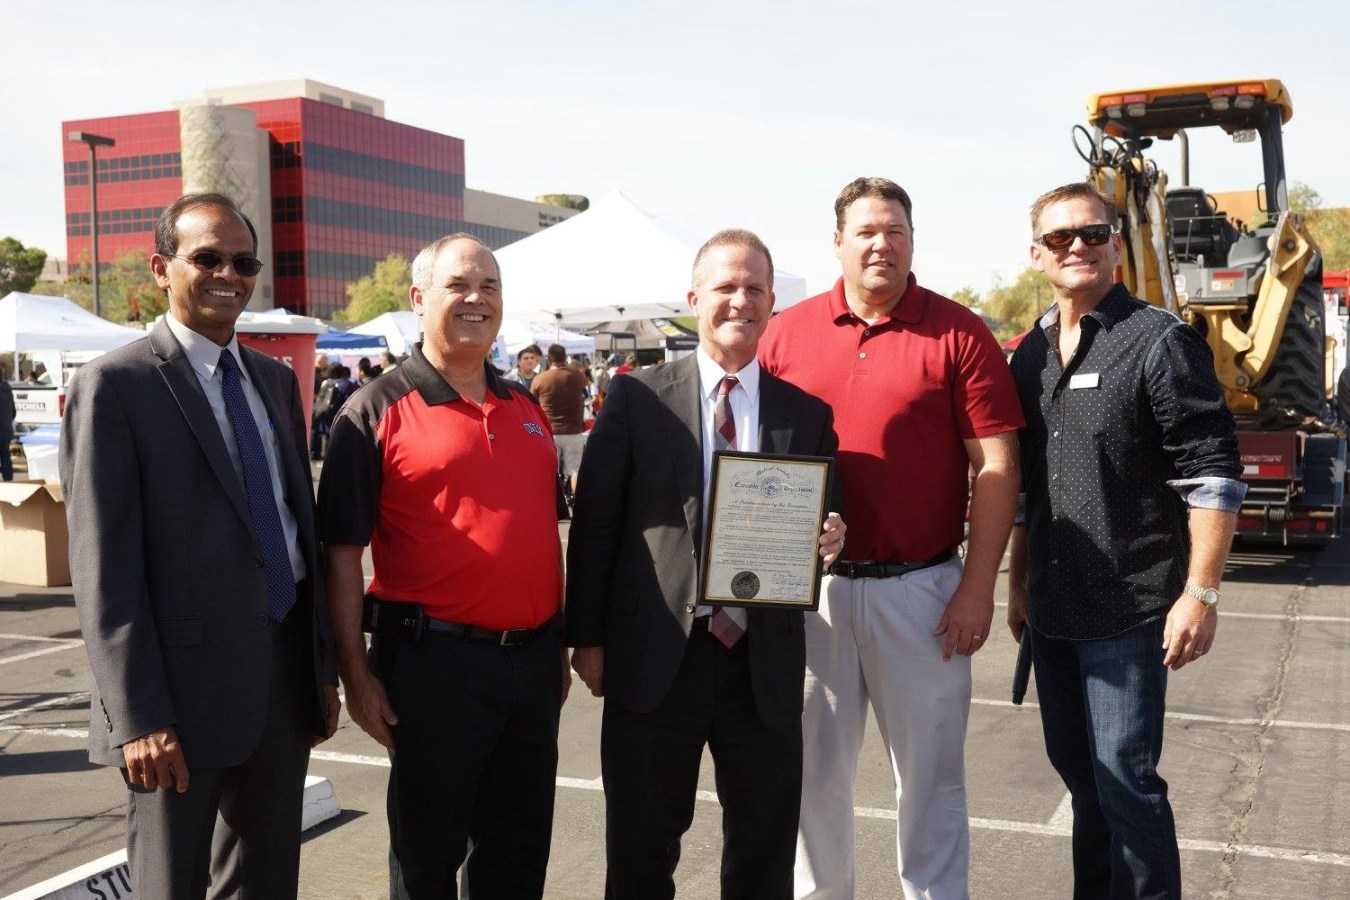 Lt Gov-Aaron and UNLV dignitaries at CCD LV